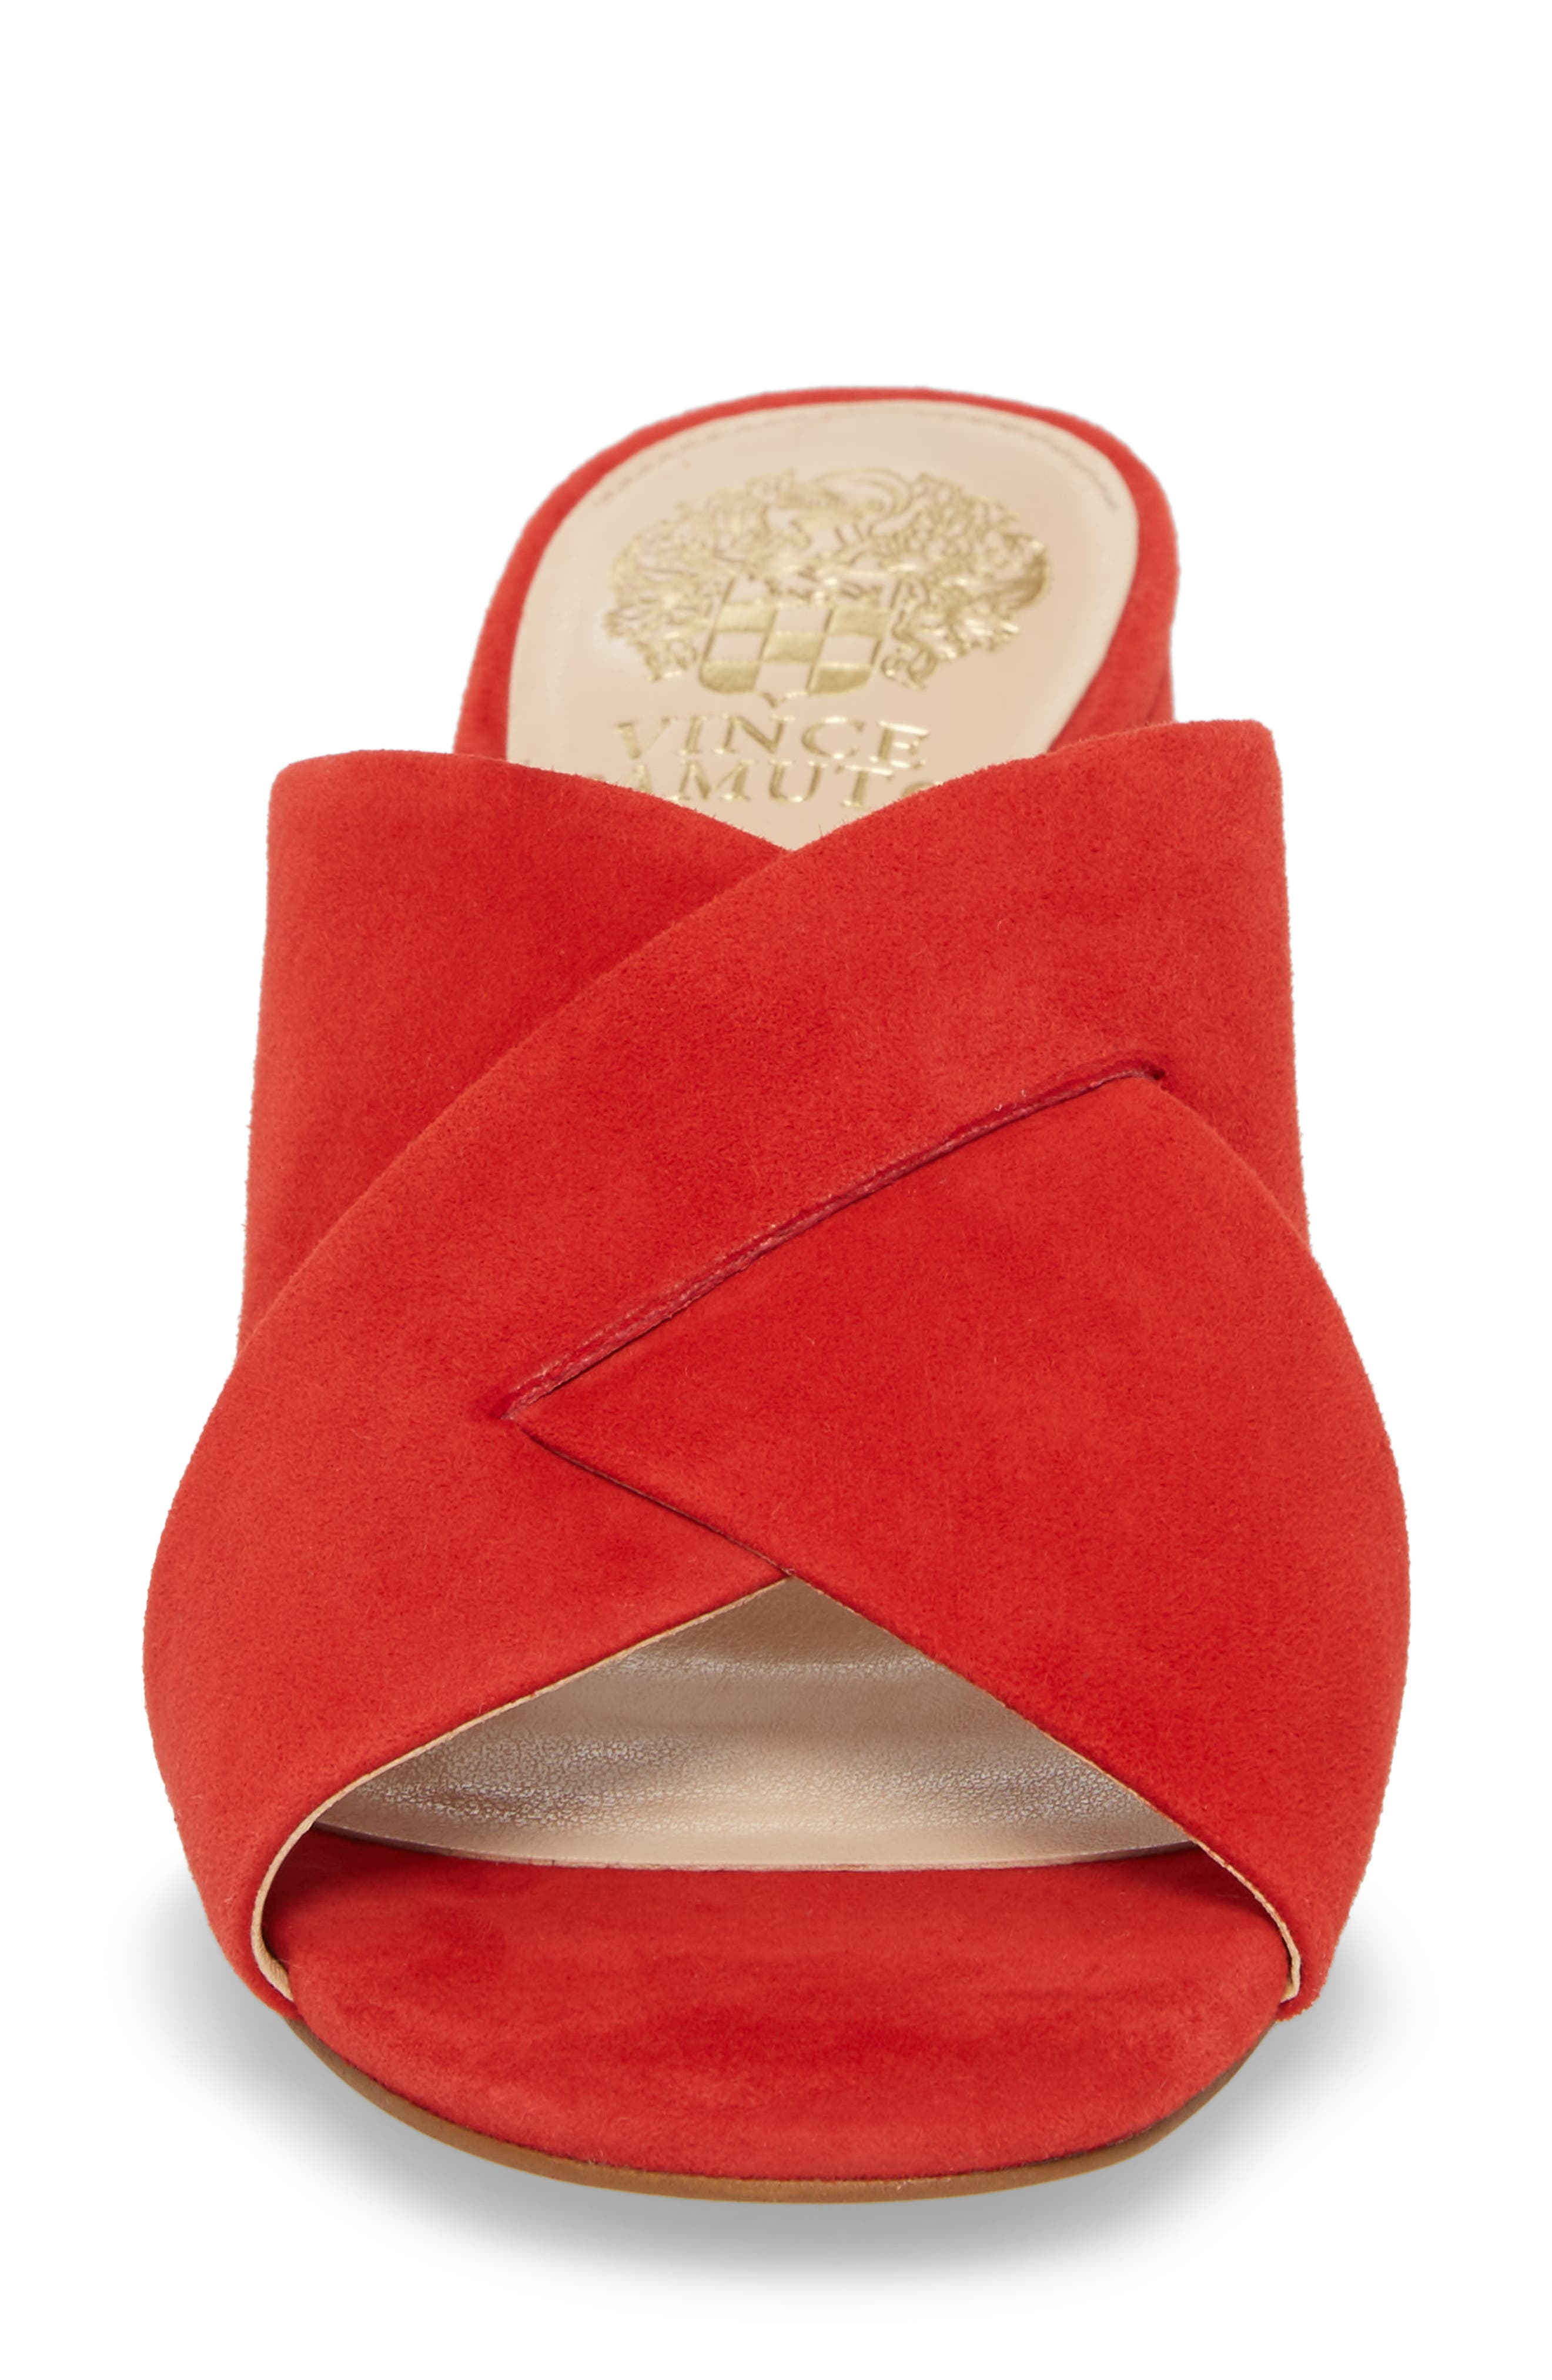 Stania Sandal,                             Alternate thumbnail 4, color,                             RED HOT RIO SUEDE